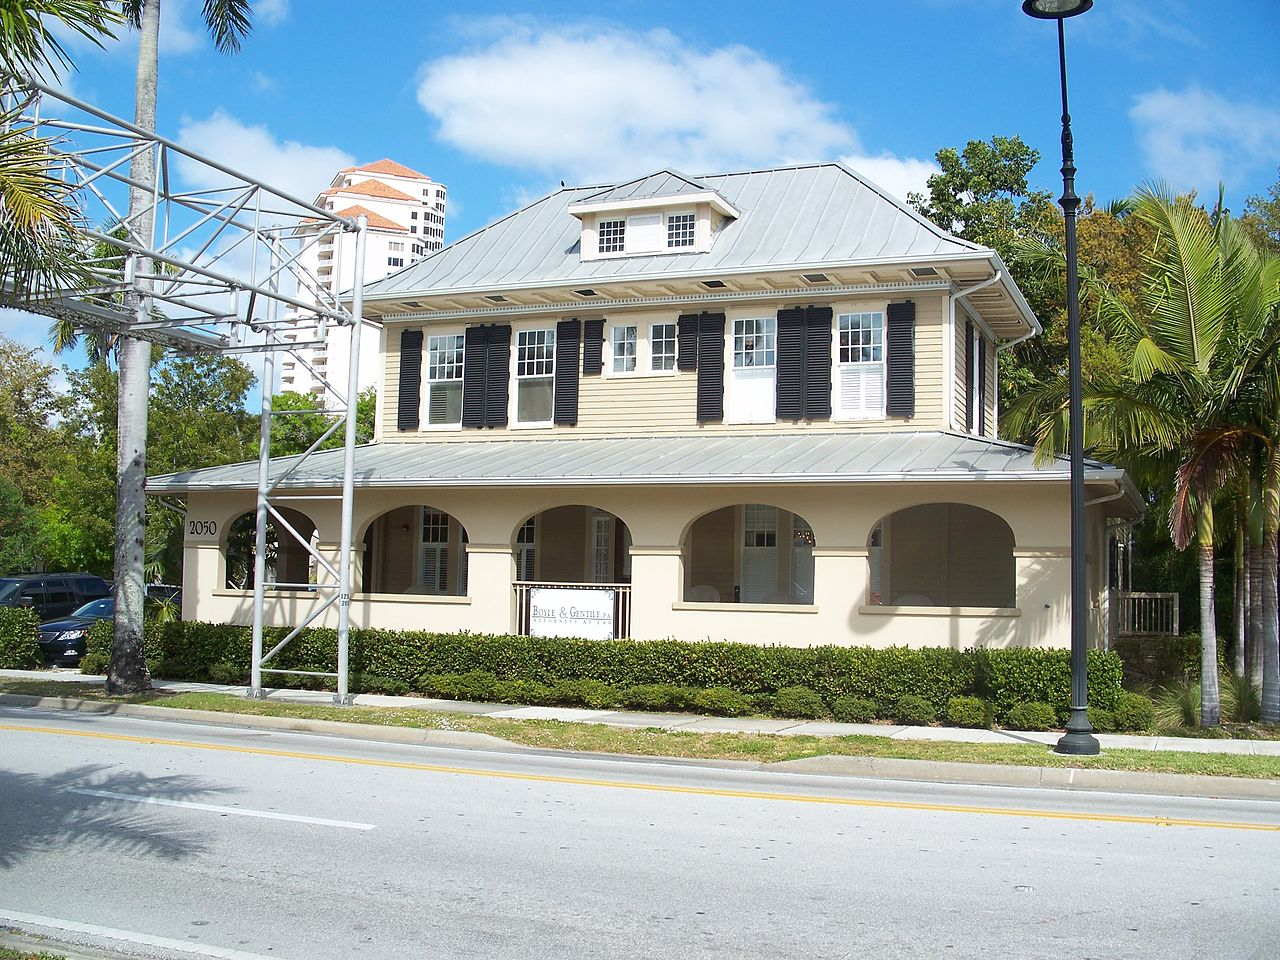 The William H. Towles House was built in 1885 by one of the city's leading historical figures of the late 18th and early 20th centuries.